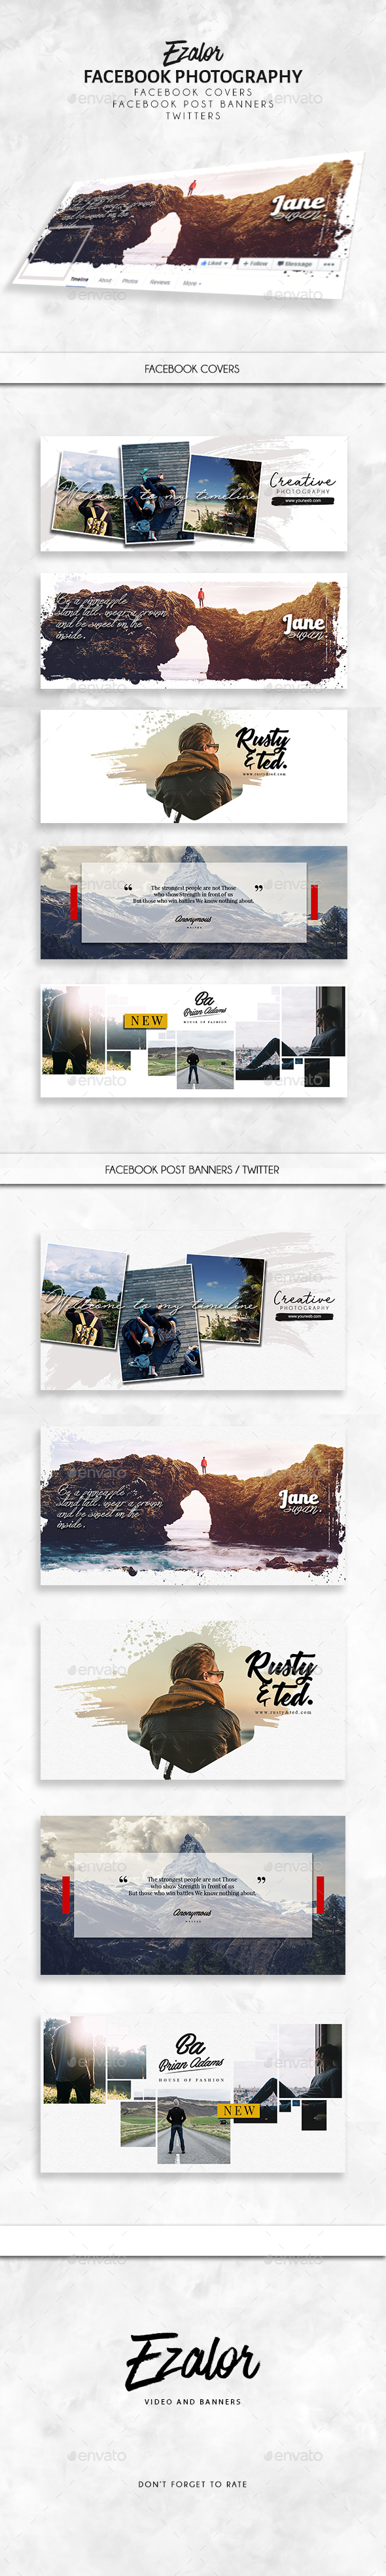 Facebook Set - Facebook Timeline Covers Social Media